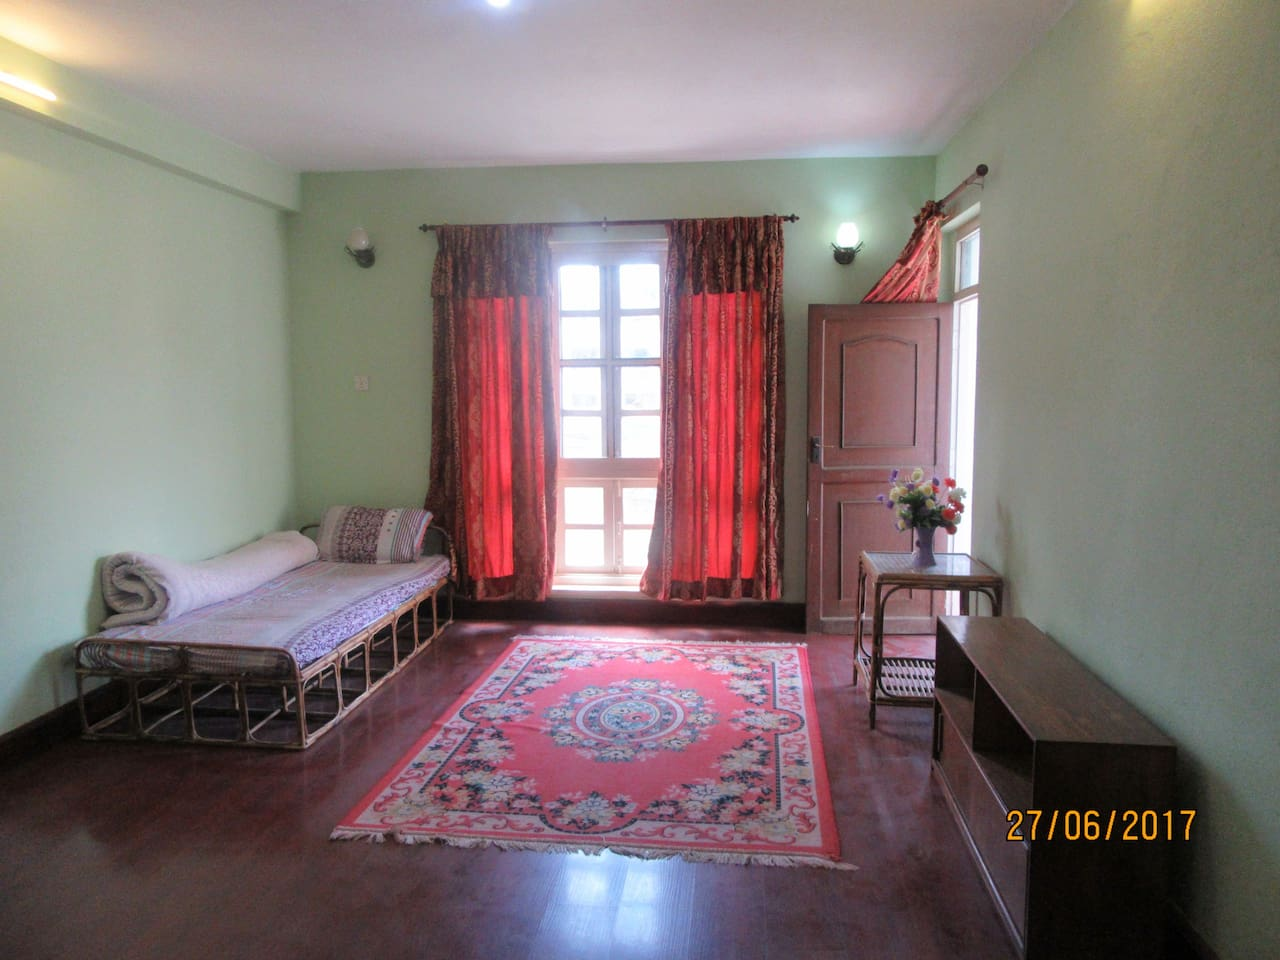 Master Bedroom with balcony, furnished with bed, table and closet. 24 hours free WiFi available.